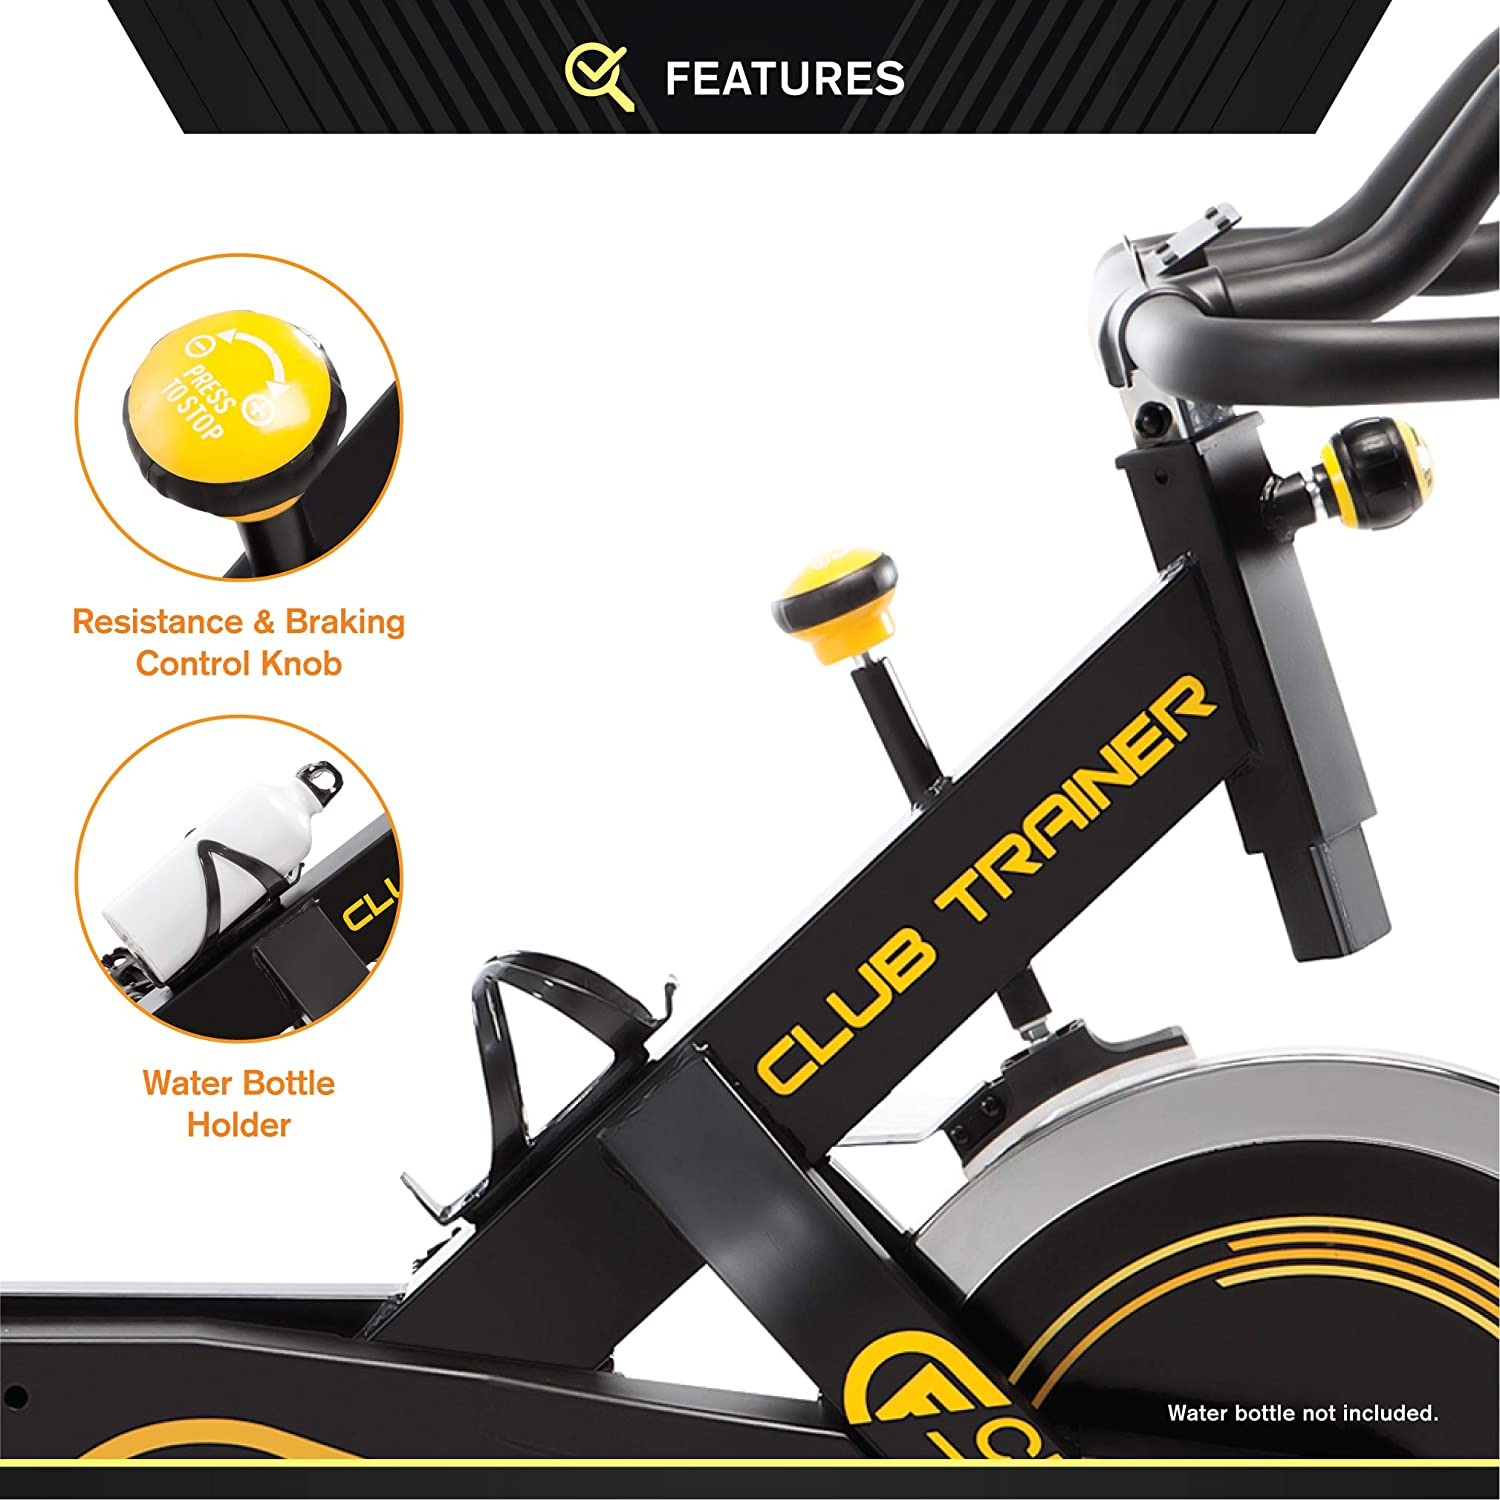 Circuit Fitness 18,1 LB Flywheel Deluxe Club Revolution Cardio Cycle Homme